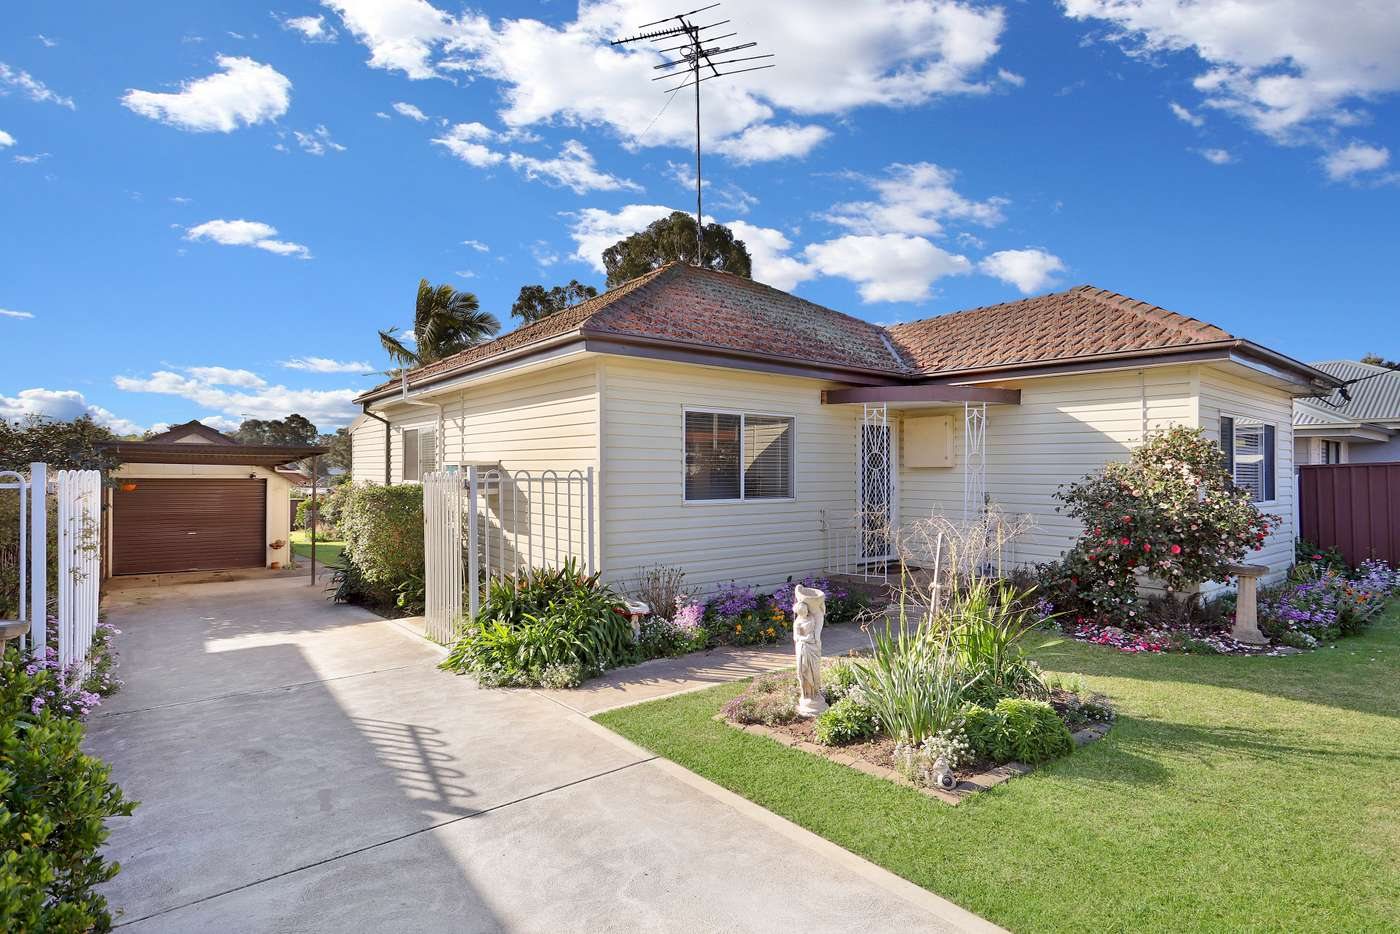 Main view of Homely house listing, 46 Mill Street, Riverstone NSW 2765